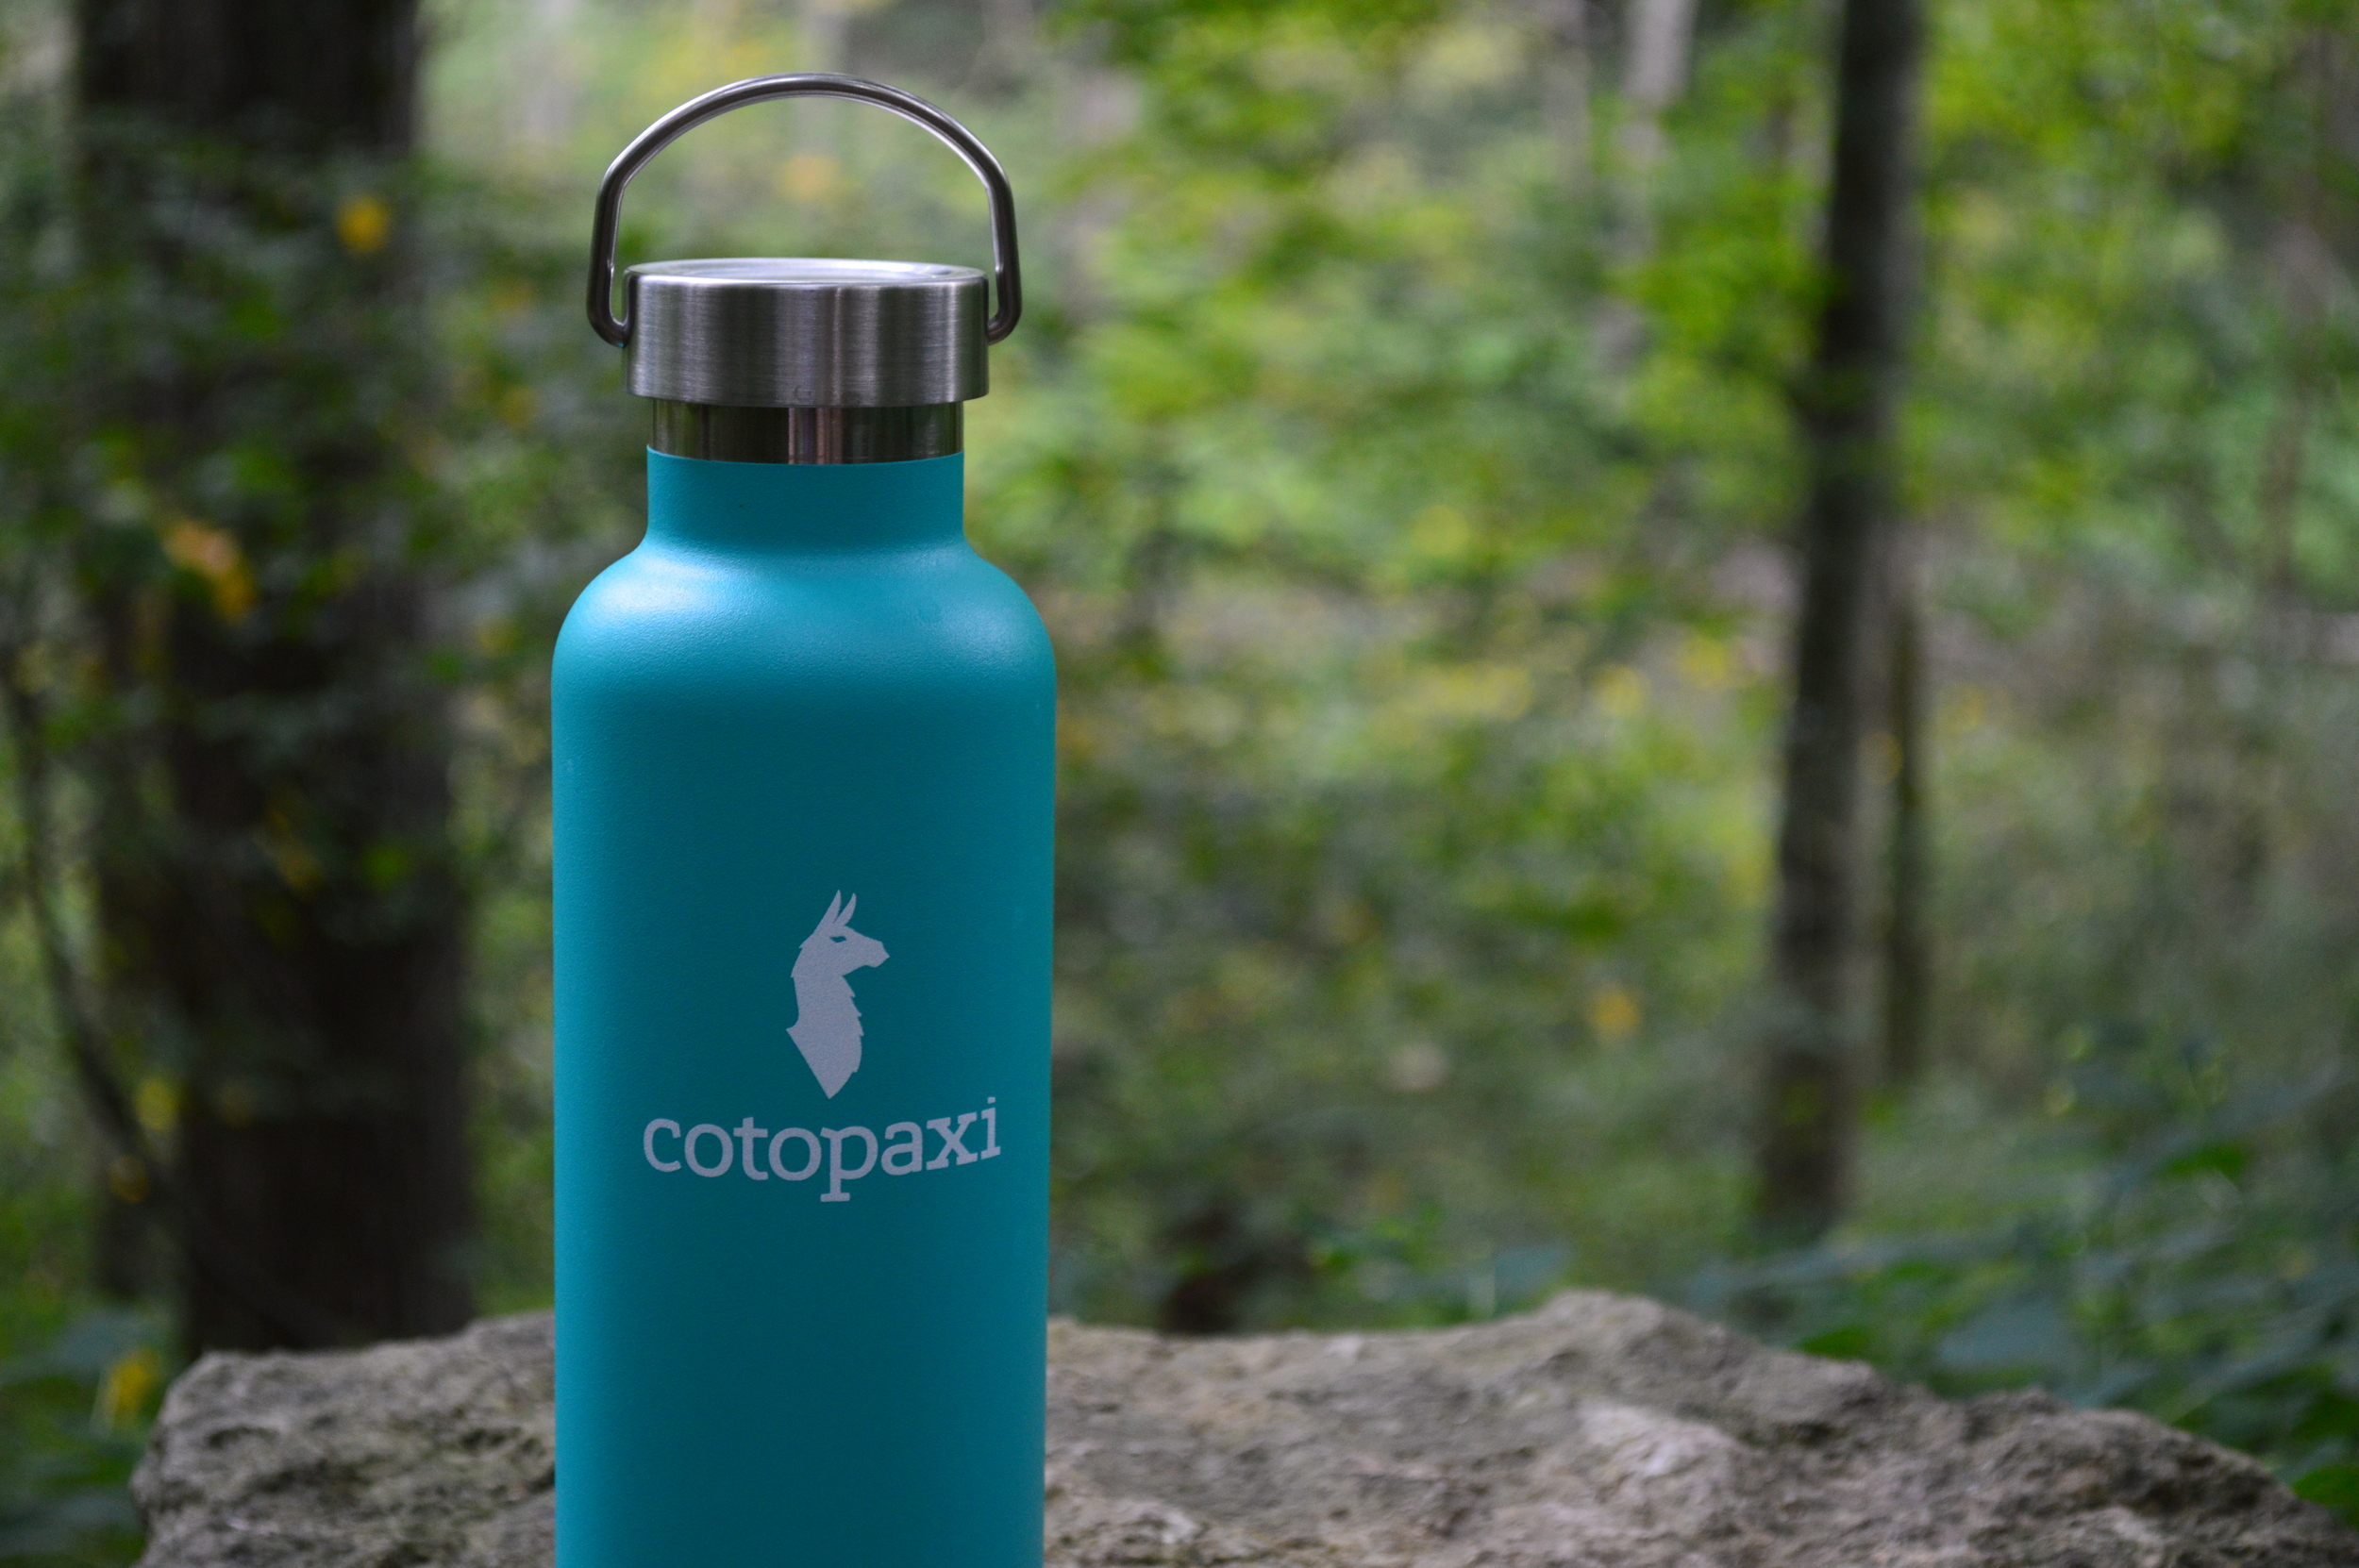 Cotopaxi Agua Water Bottle Review